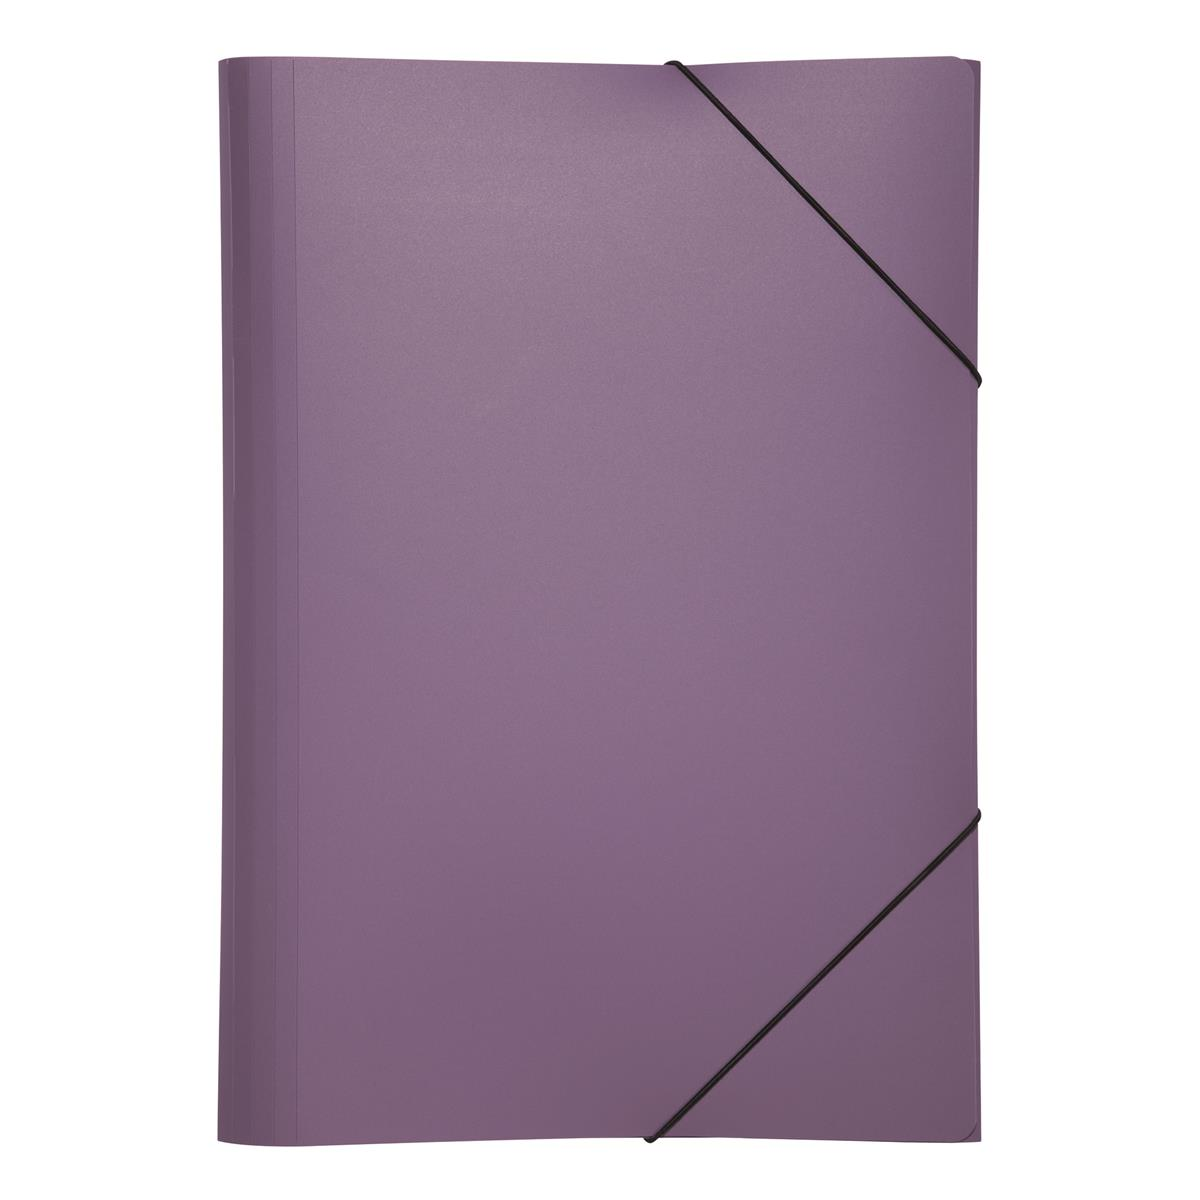 Pagna PP Folder Elasticated Straps Three Internal Flaps A4 Purple Ref 2161312 [Pack 10]